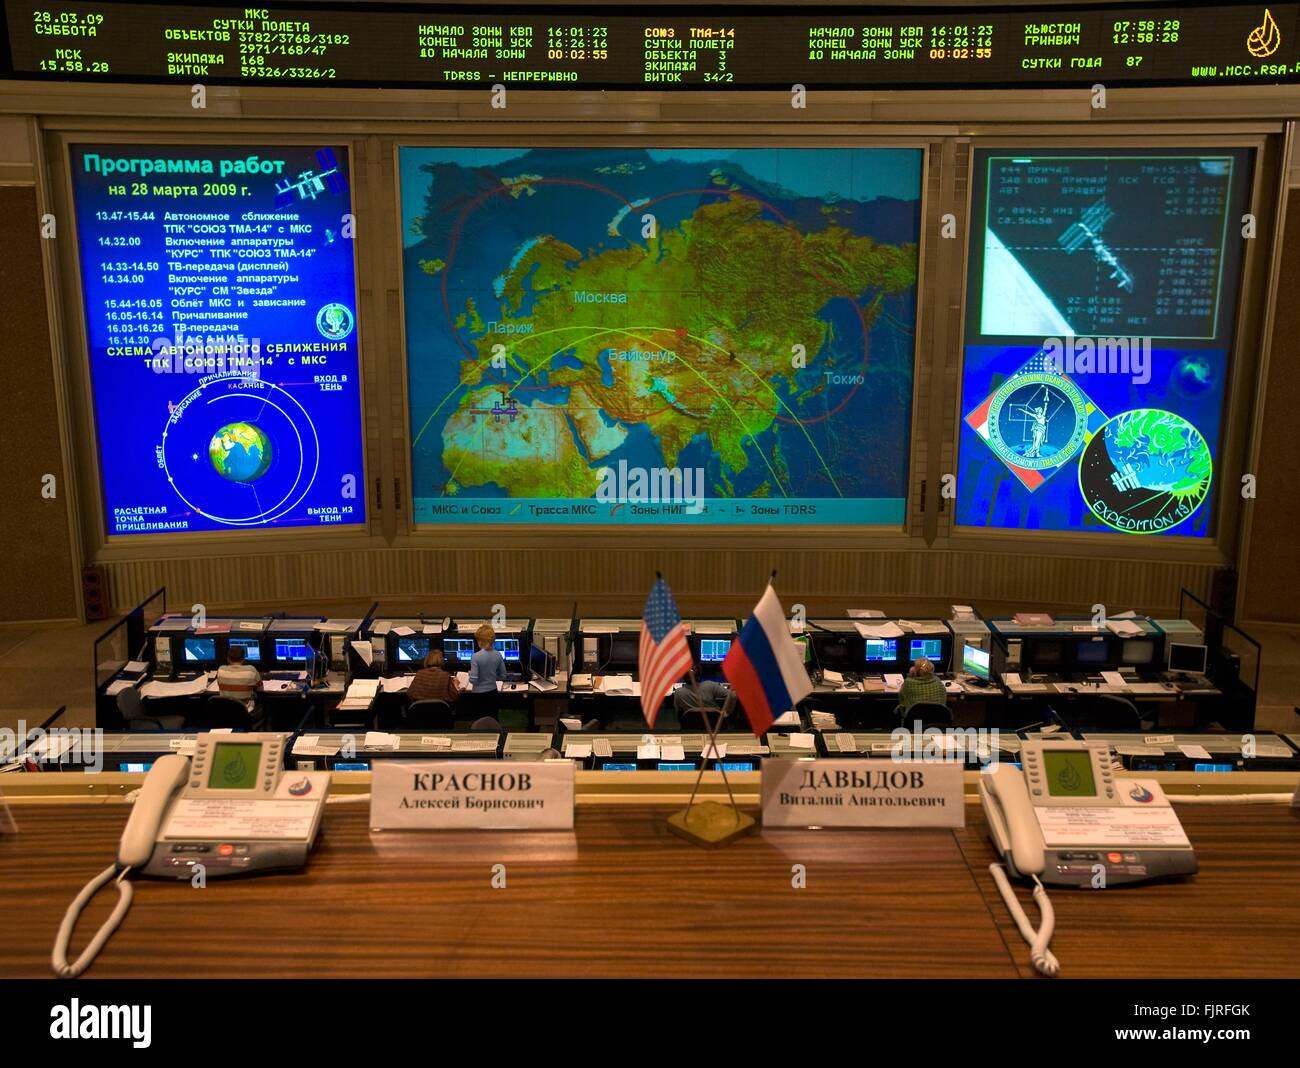 View of the Russian Mission Control center as the Soyuz TMA-14 spacecraft docks to the International Space Station - Stock Image